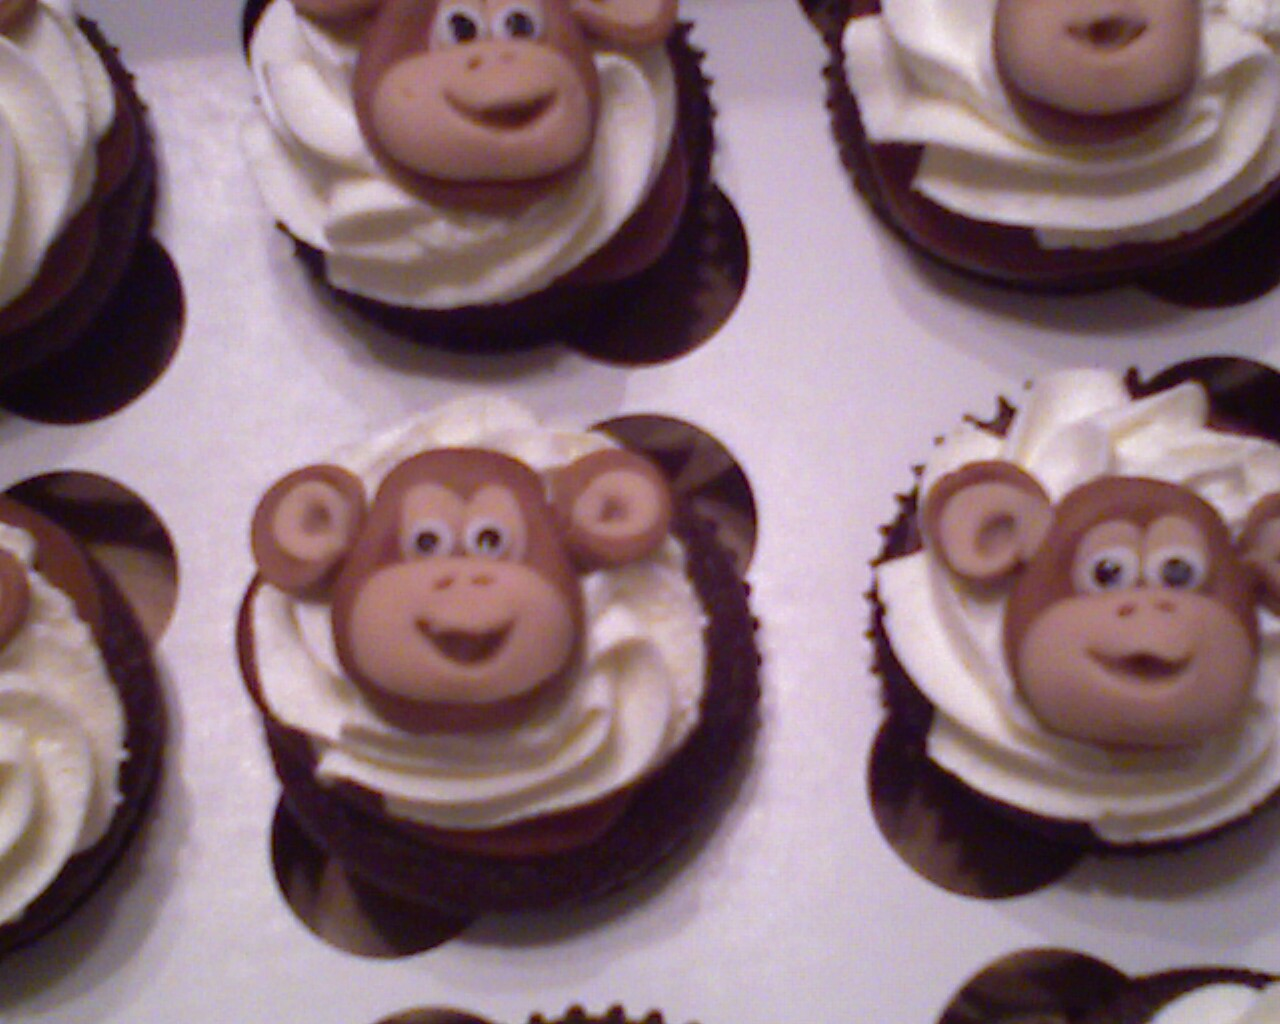 Monkey love cupcakes - photo#20